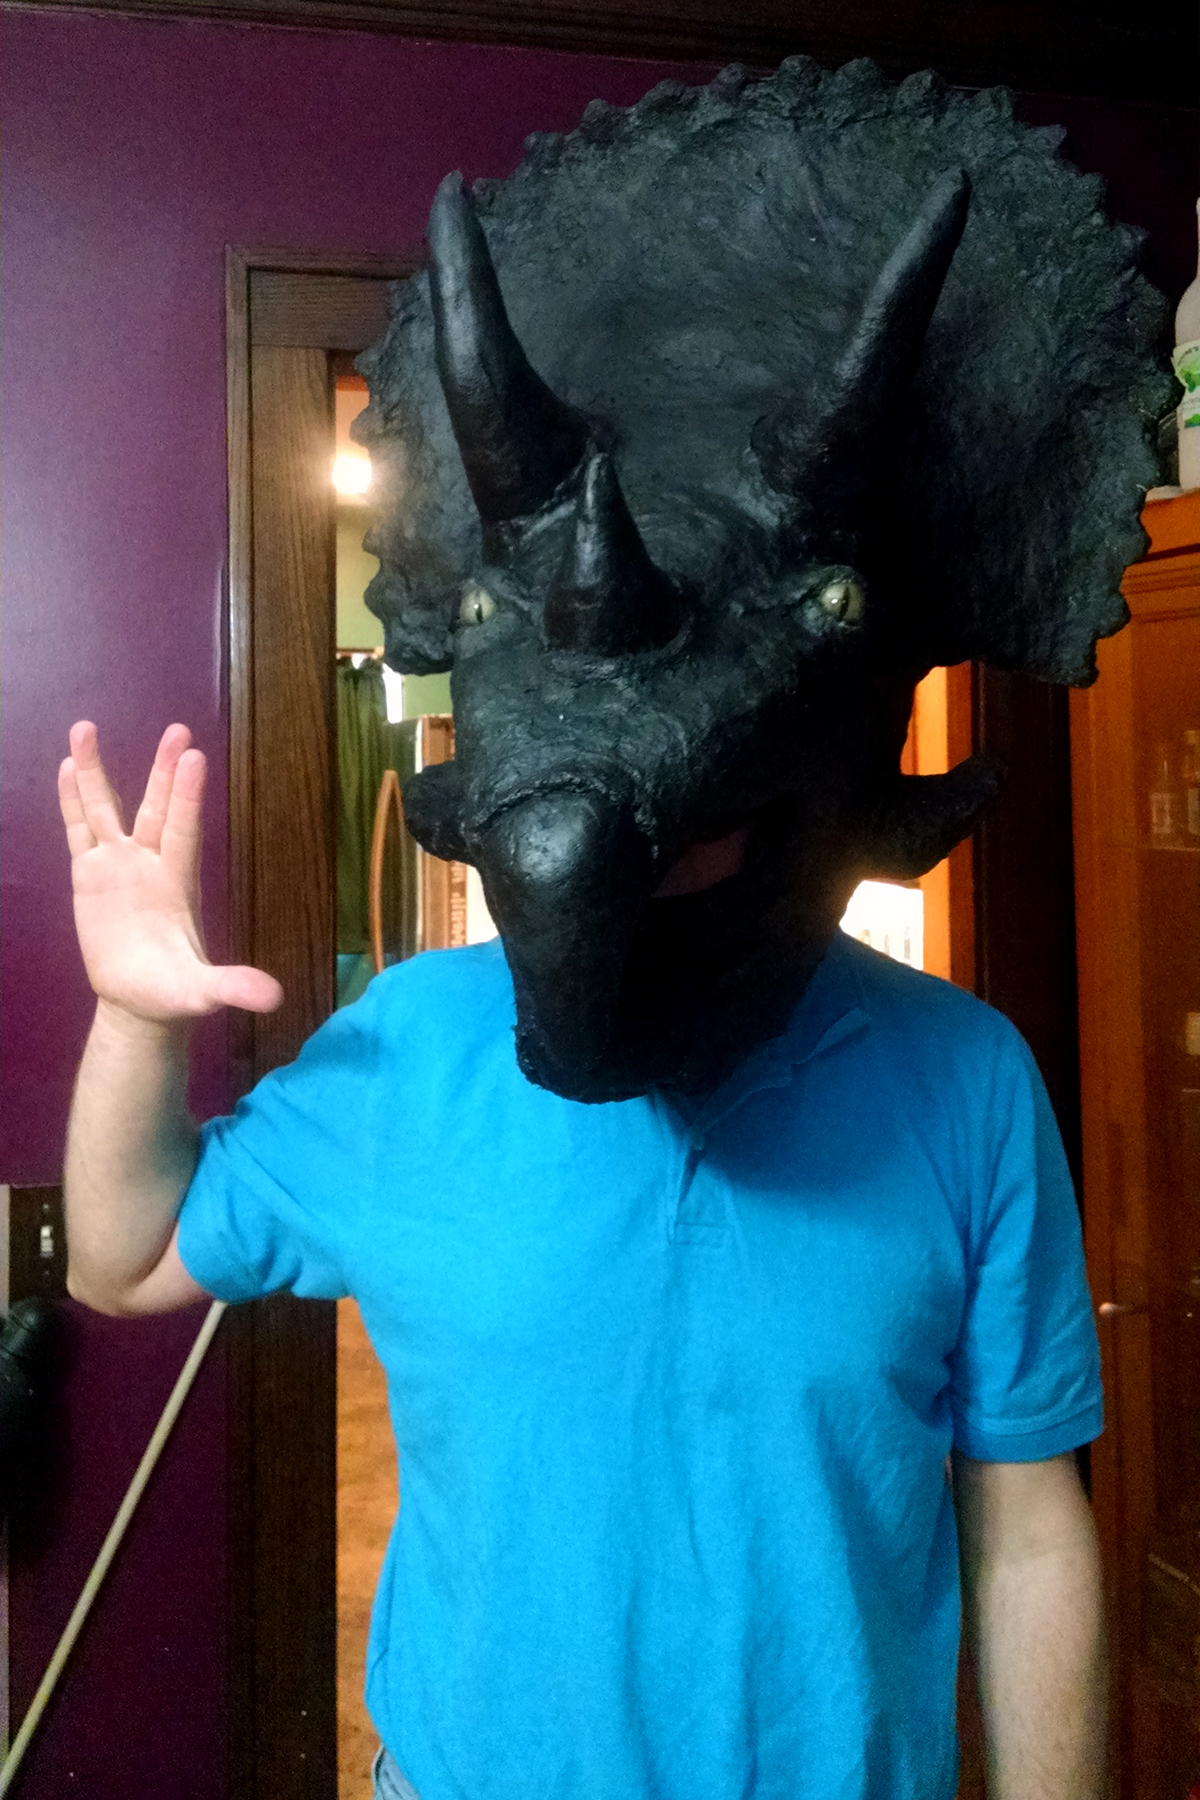 A man wears an all black Triceracop mask while giving the vulcan salute.